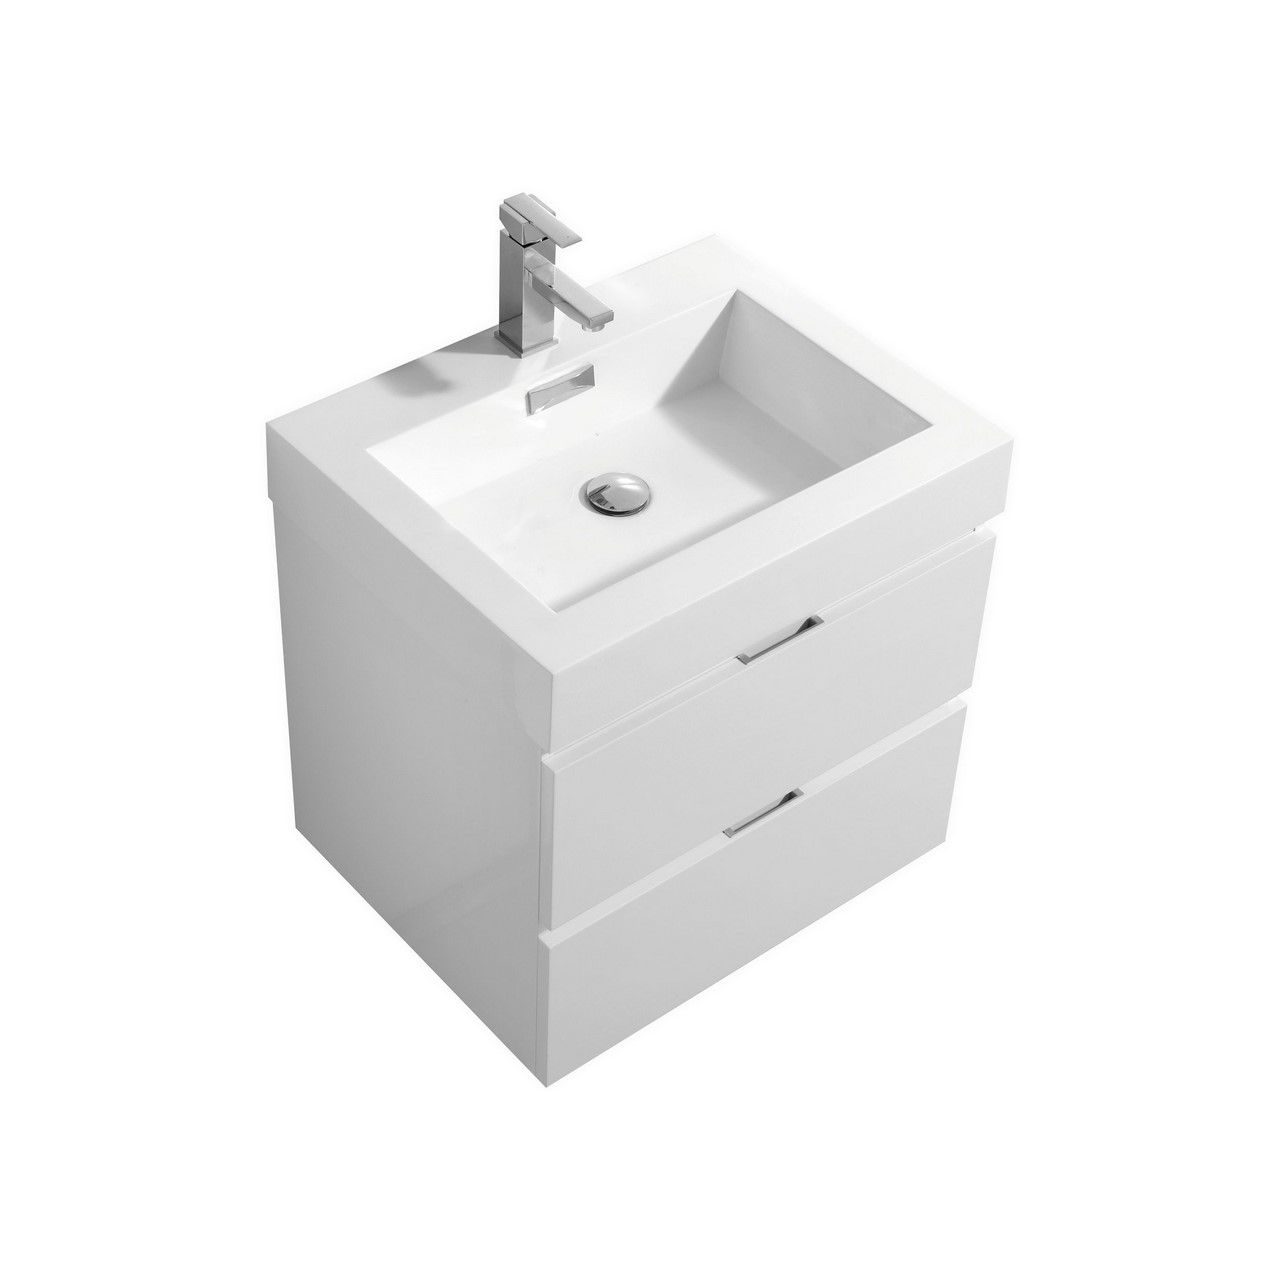 "Kubebath - 24"" Floating Vanity Set - White Finish"